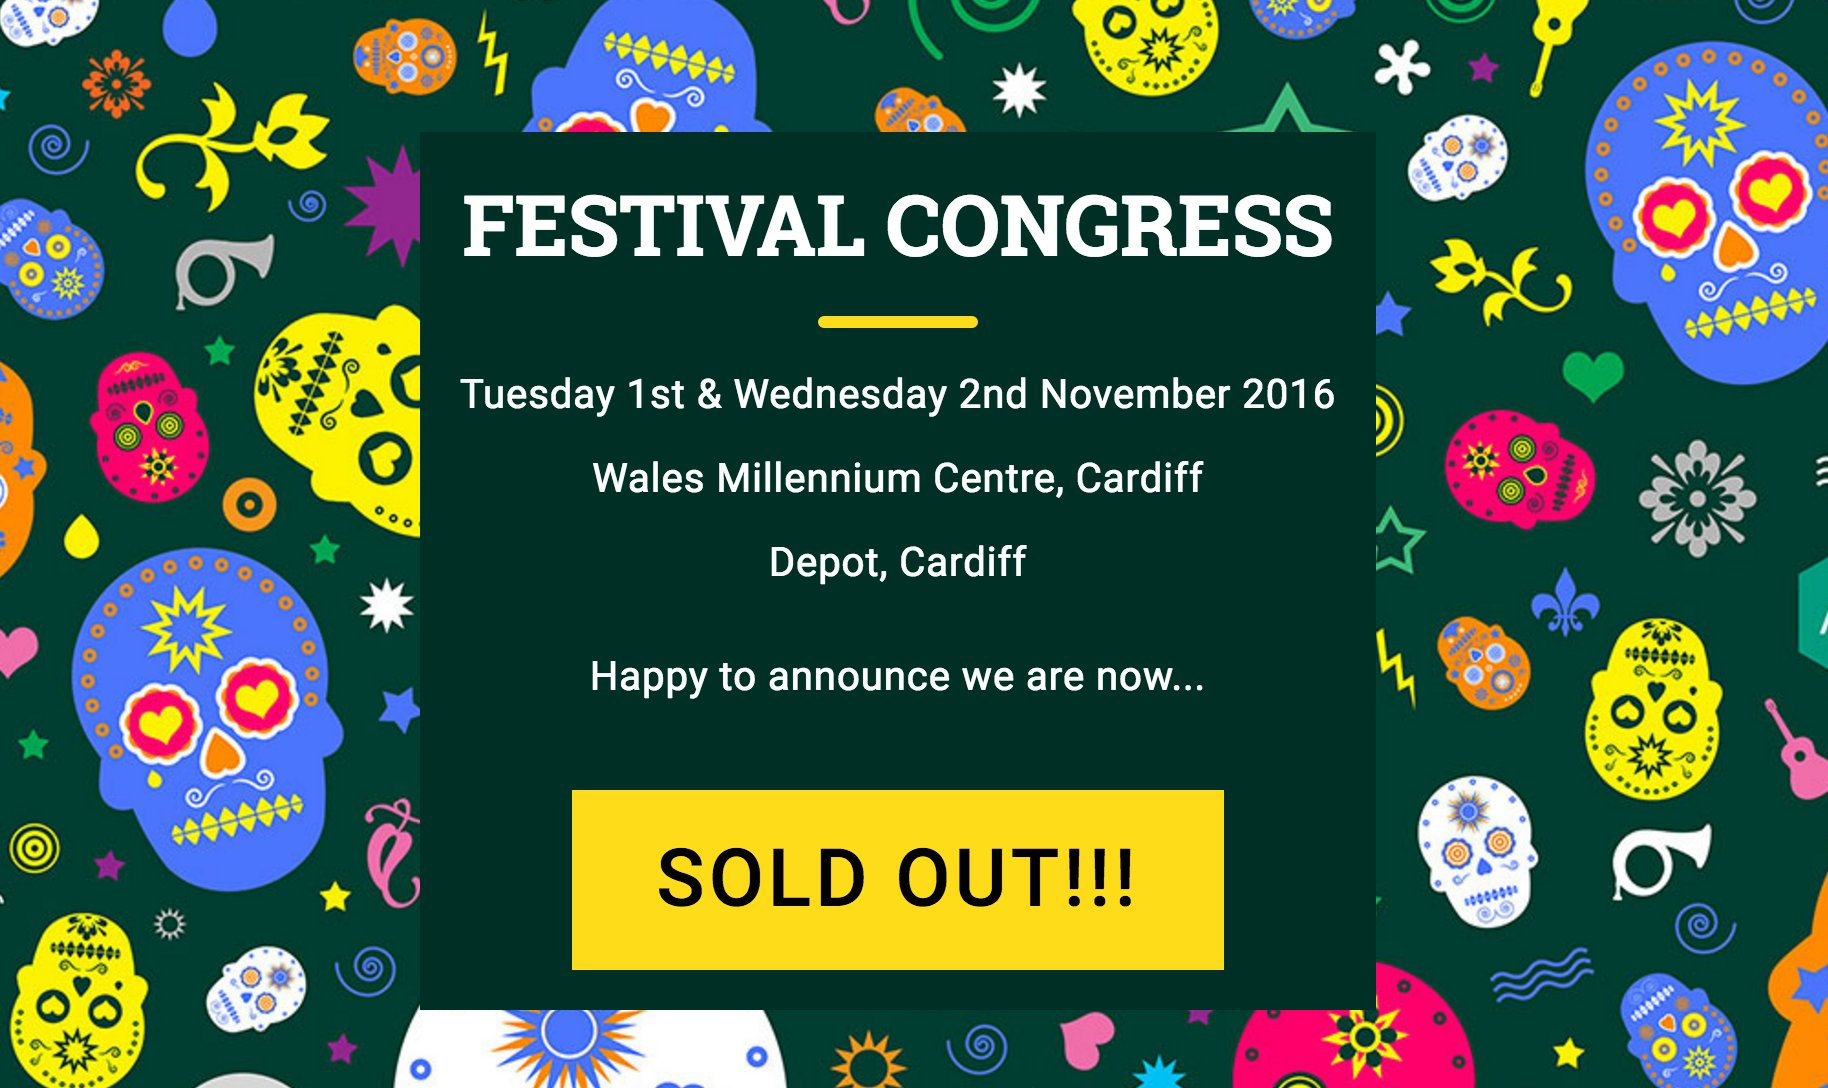 WE'VE SOLD OUT!!! See you tomorrow 🎉 #FestCongress https://t.co/sGG8UF50dI